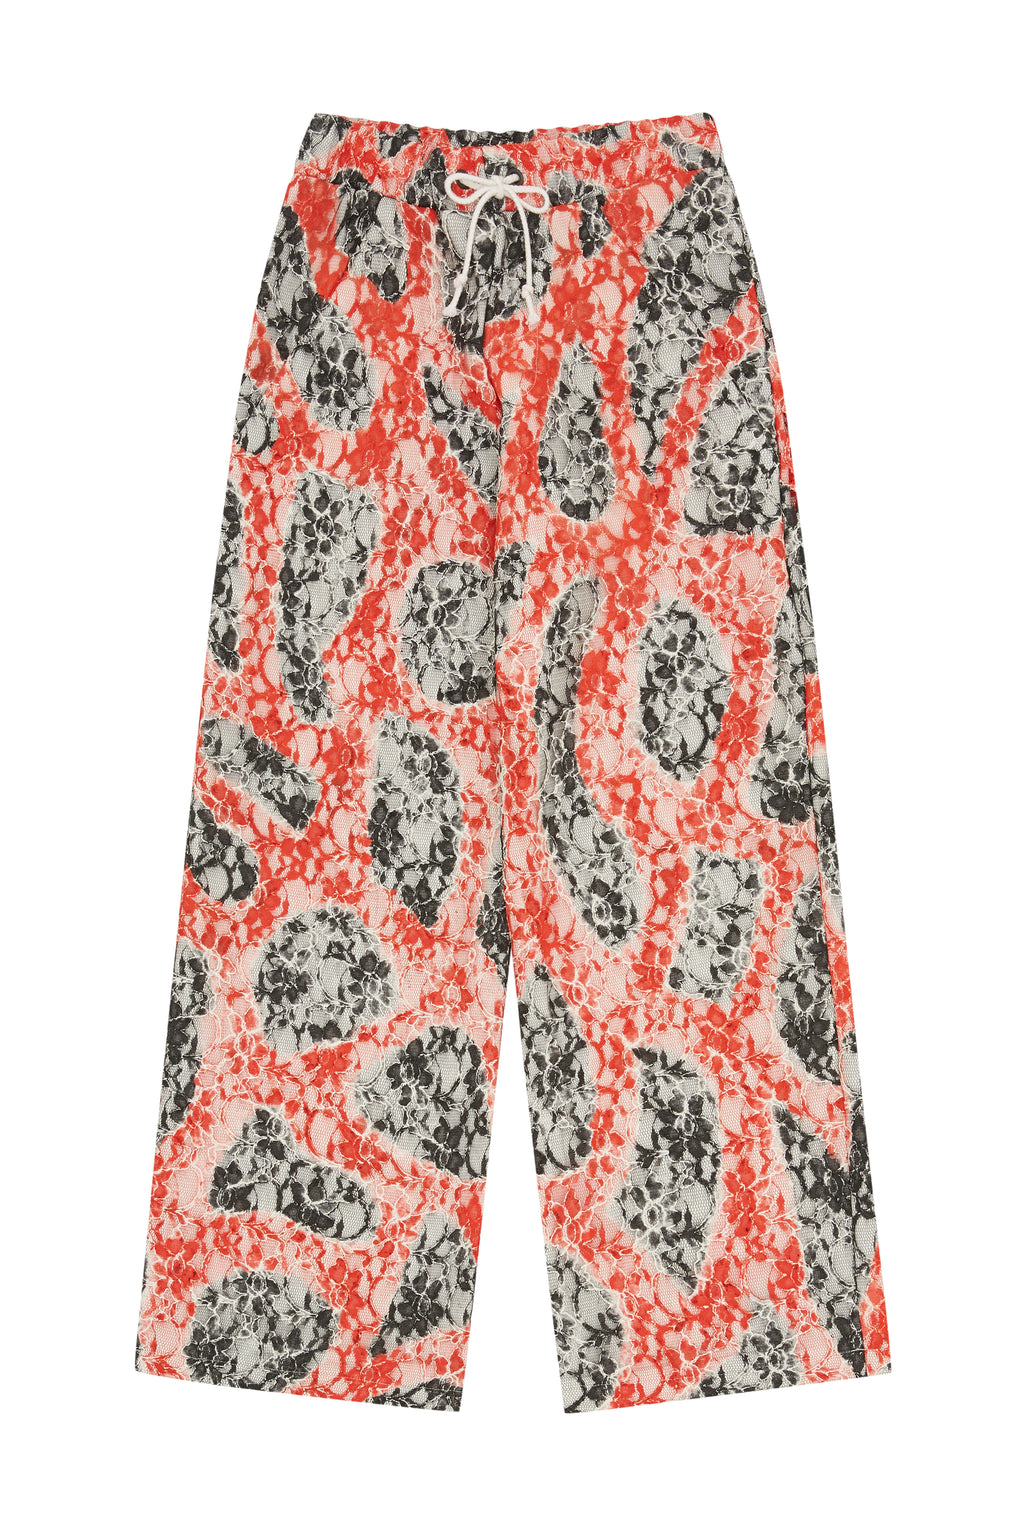 FLOGA TROUSERS